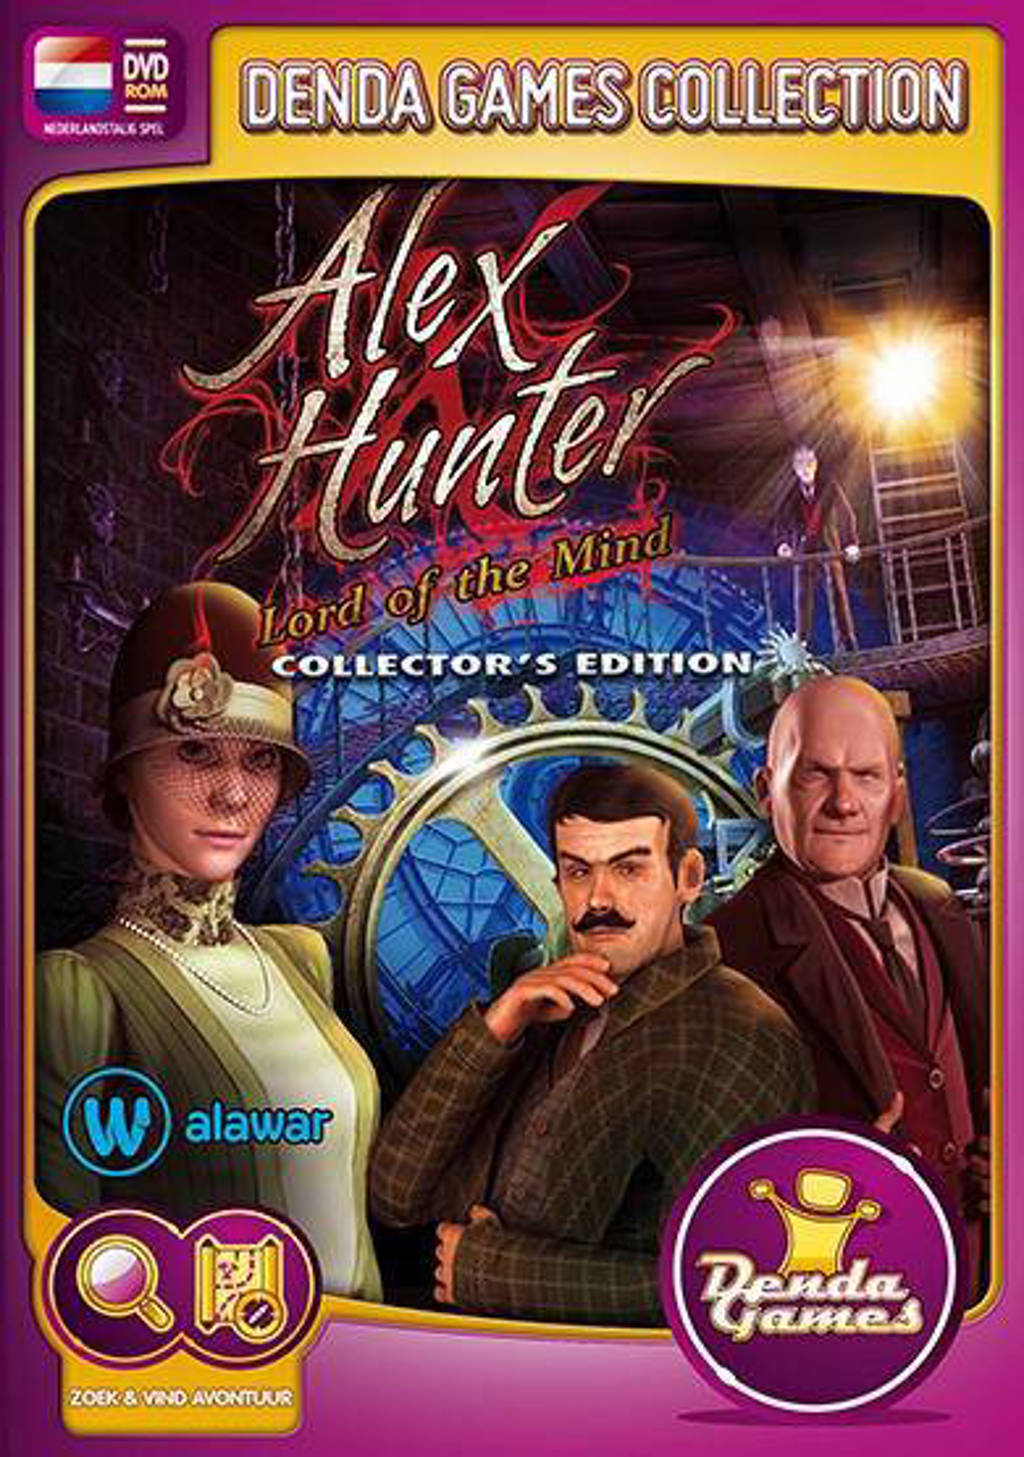 Alex Hunter - Lord of the mind (Collectors edition) (PC)